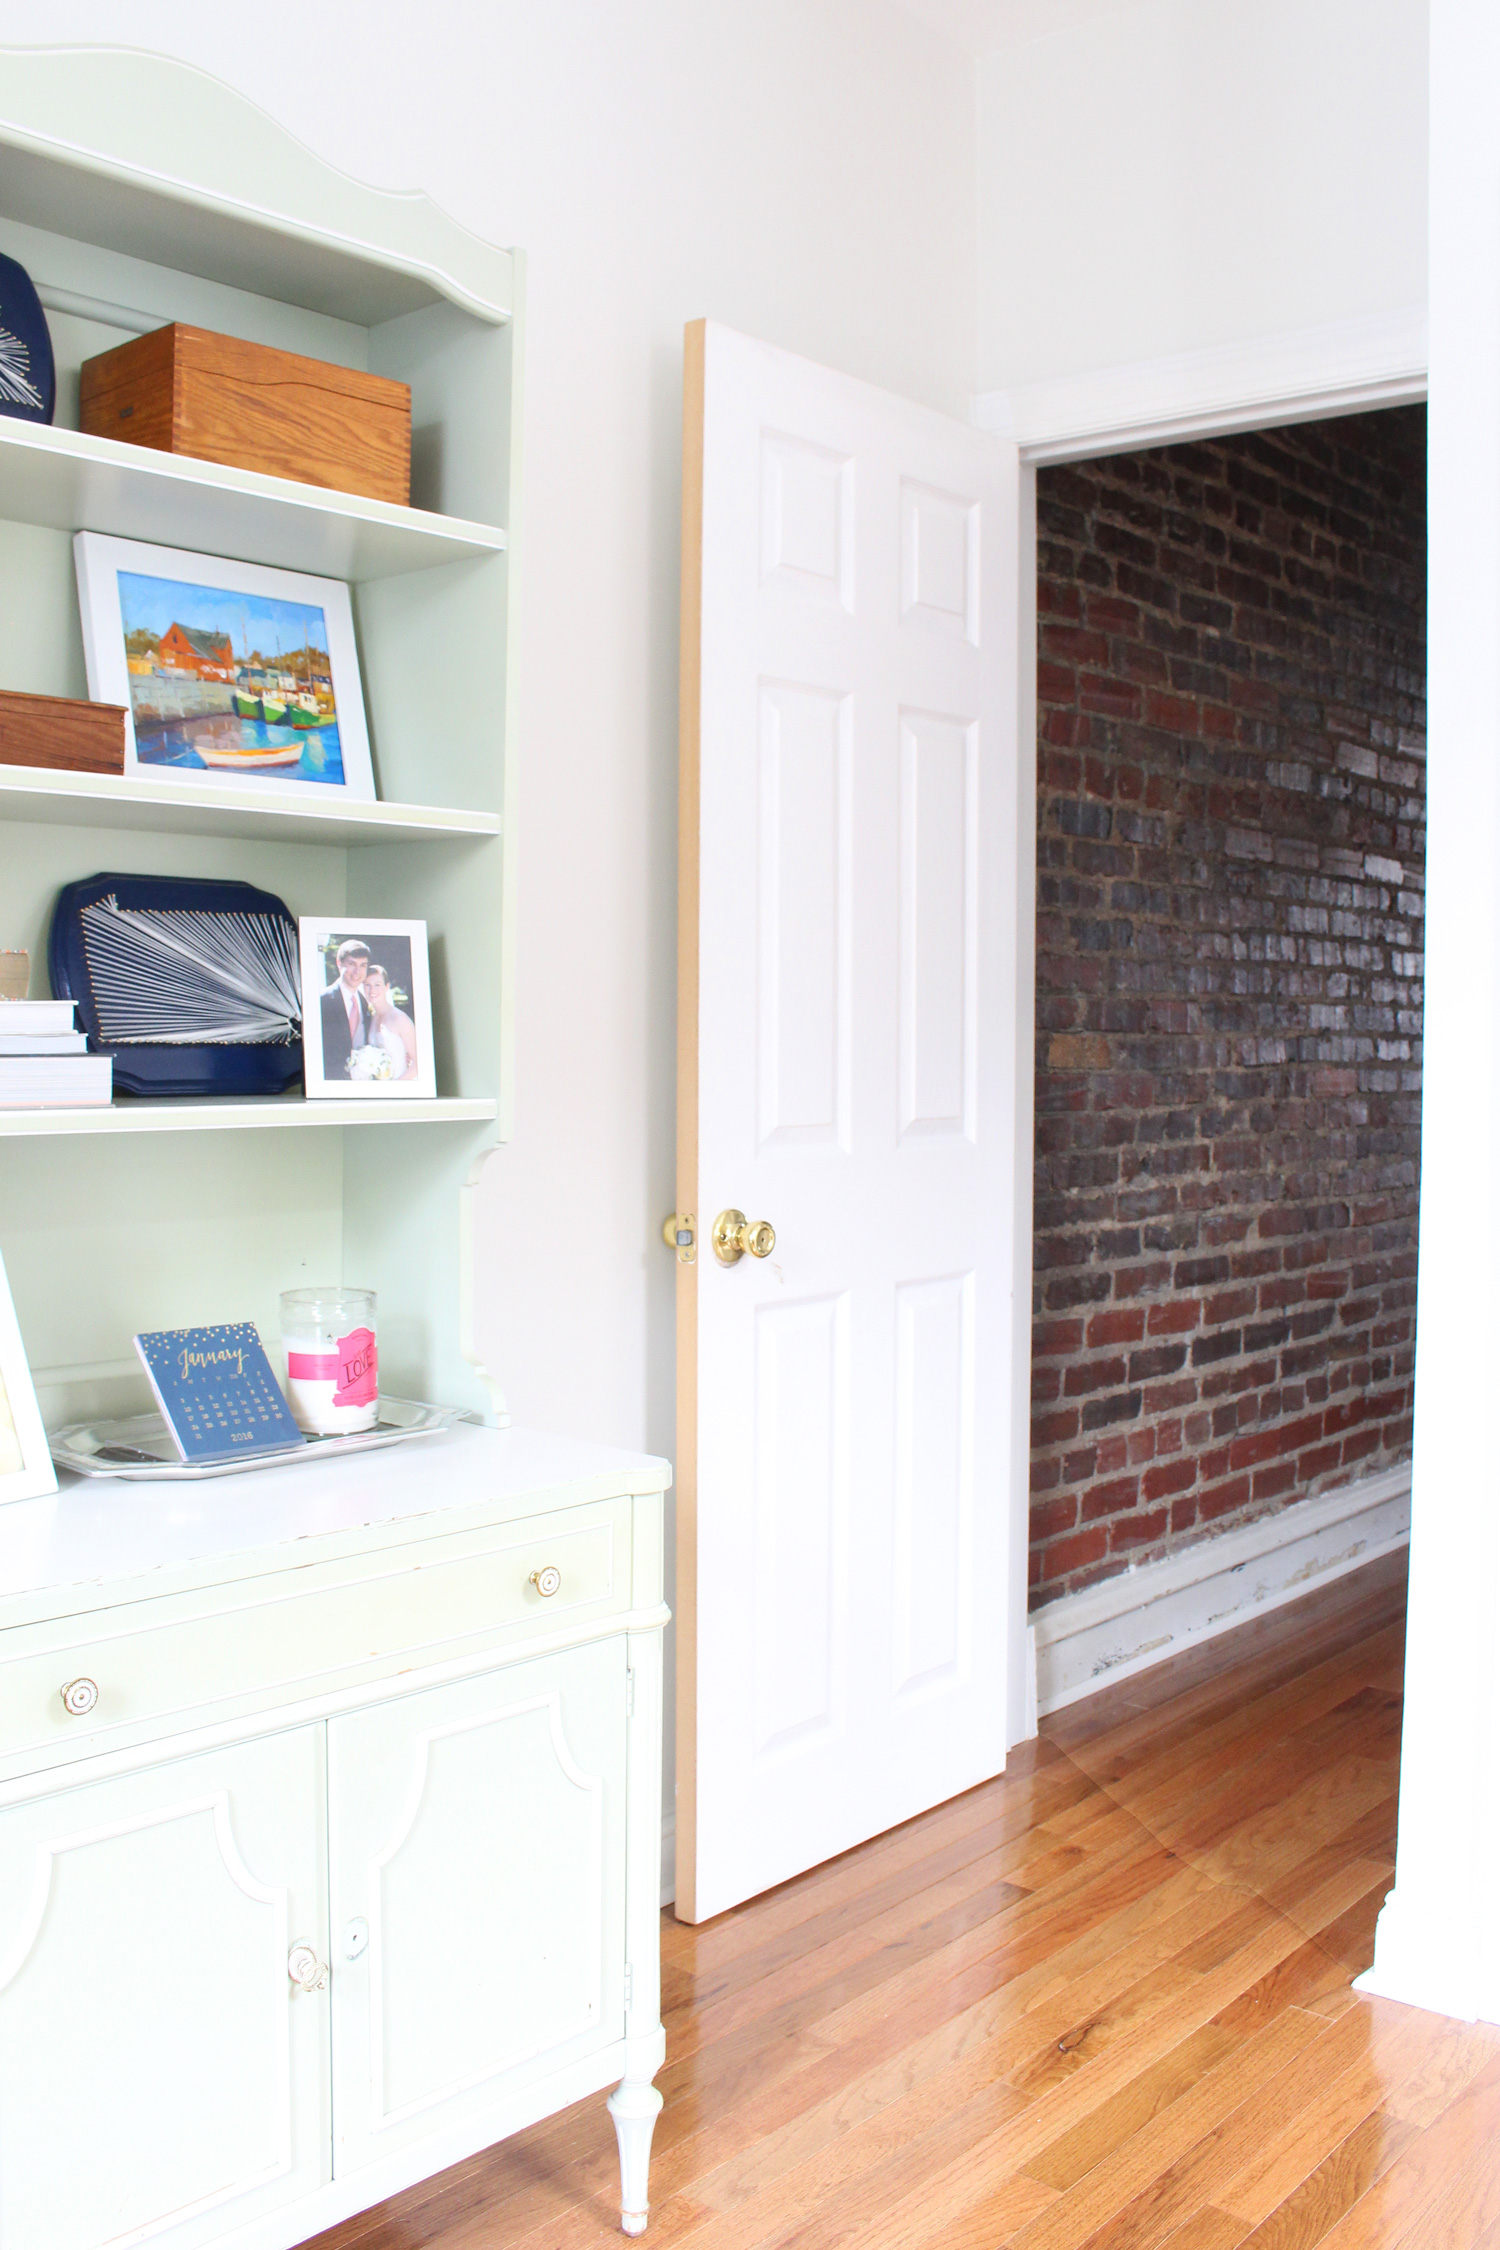 Door from the office to the exposed brick hallway.